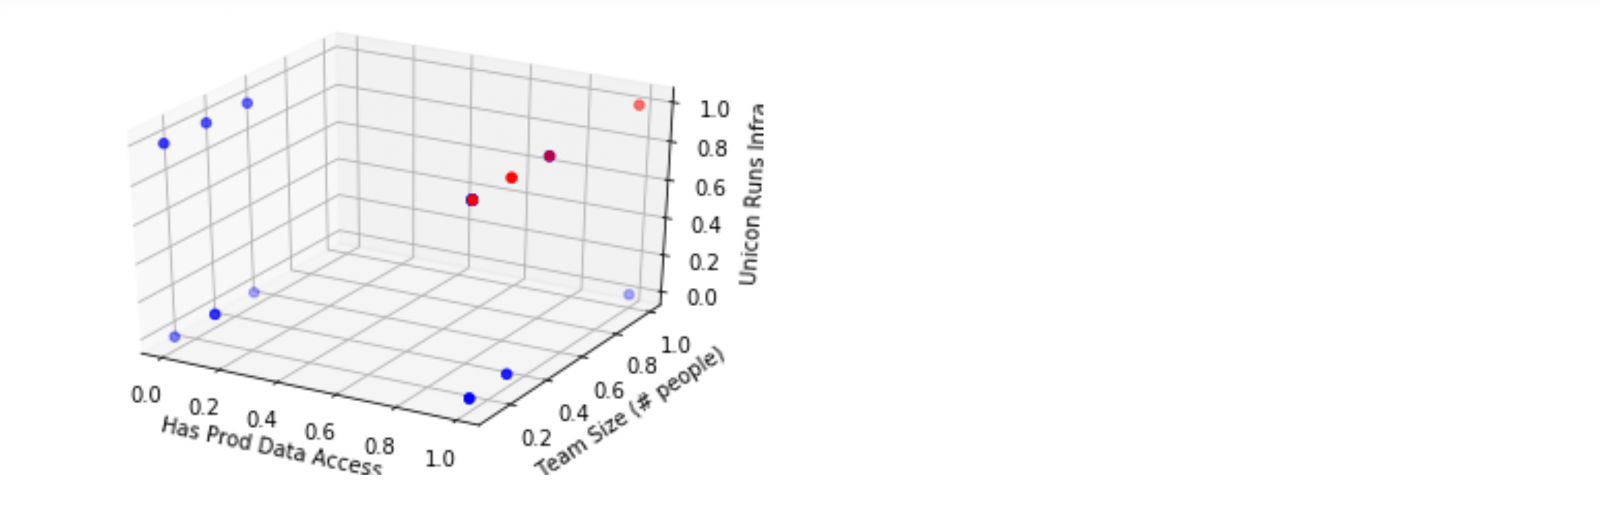 Screenshot of resulting scatter plot visual of the data.